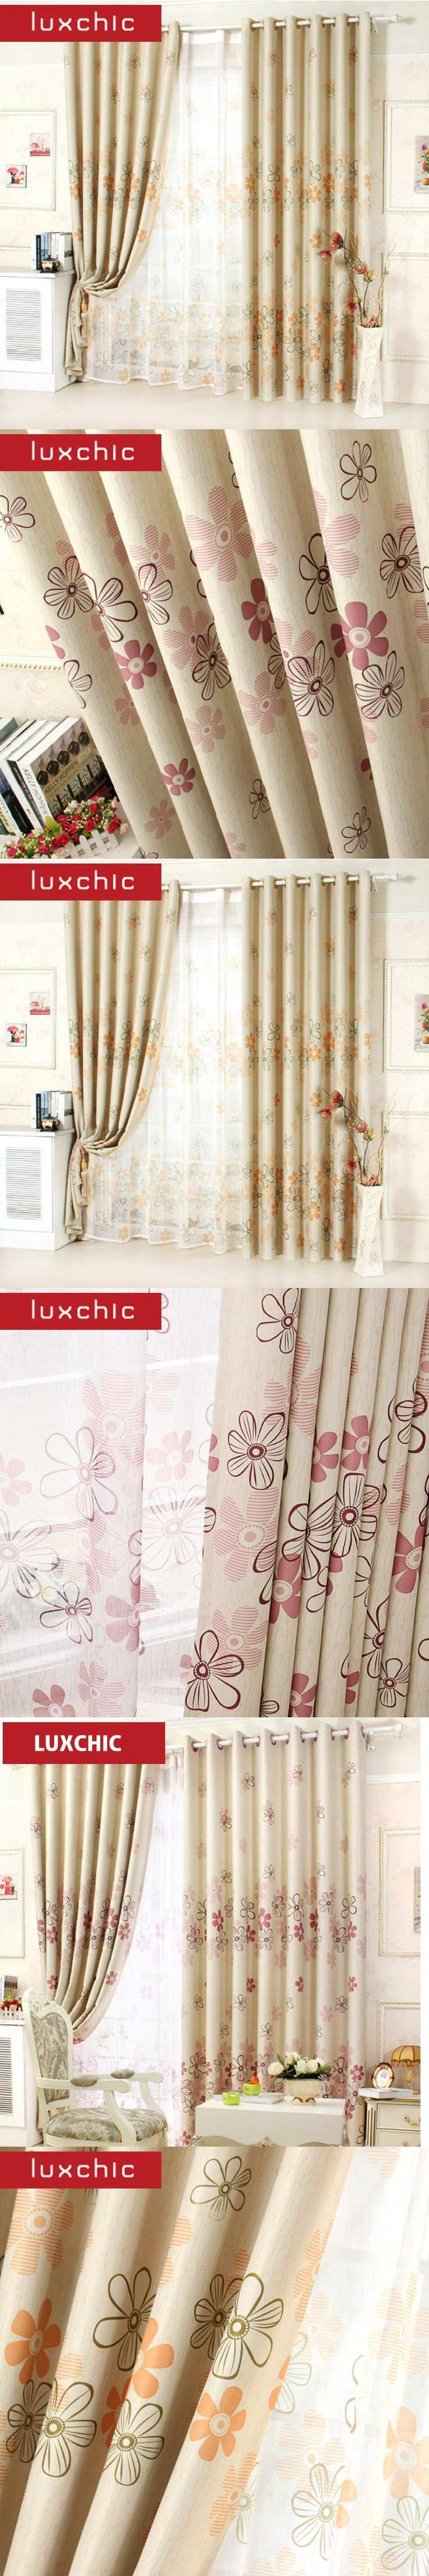 Modern Curtains Blackout Curtains for Living Room Kids Curtains for Bedroom  Window Treatment Purple/Orange